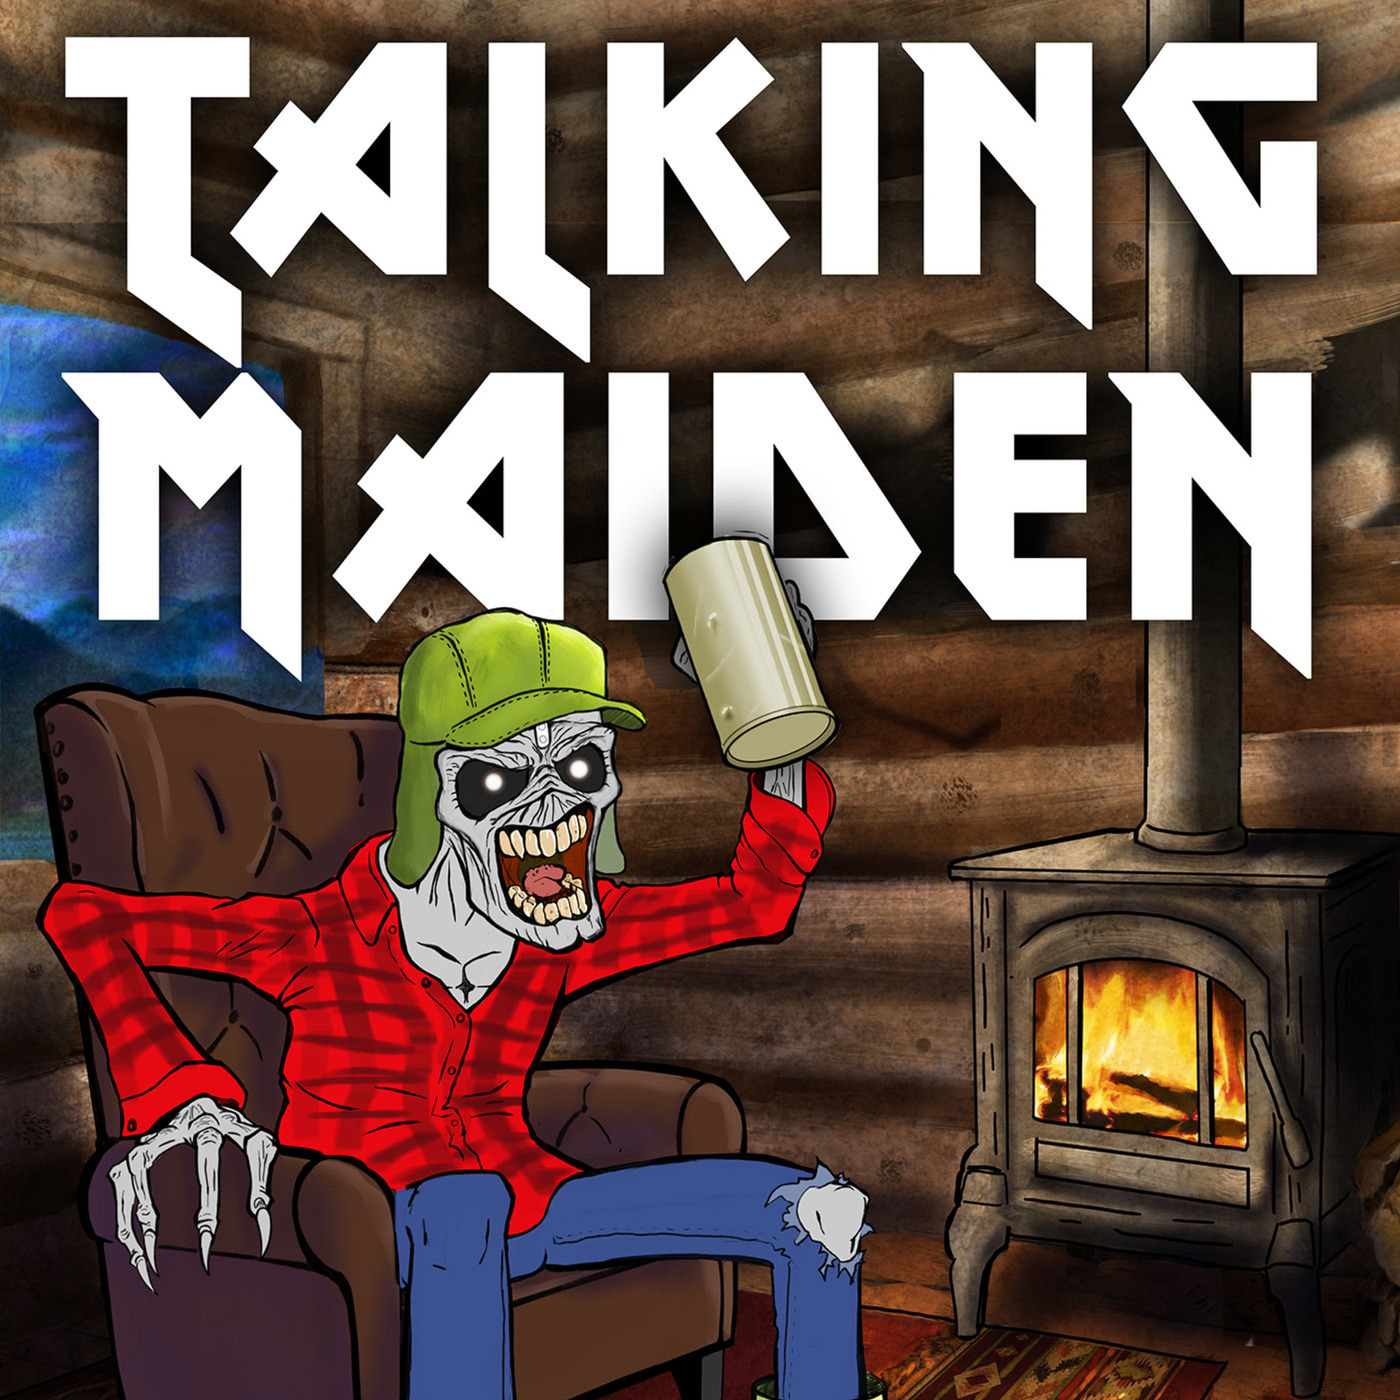 Talking Maiden : The Podcast of the Beast: Episode 107 - Piece of Mind - Part 2